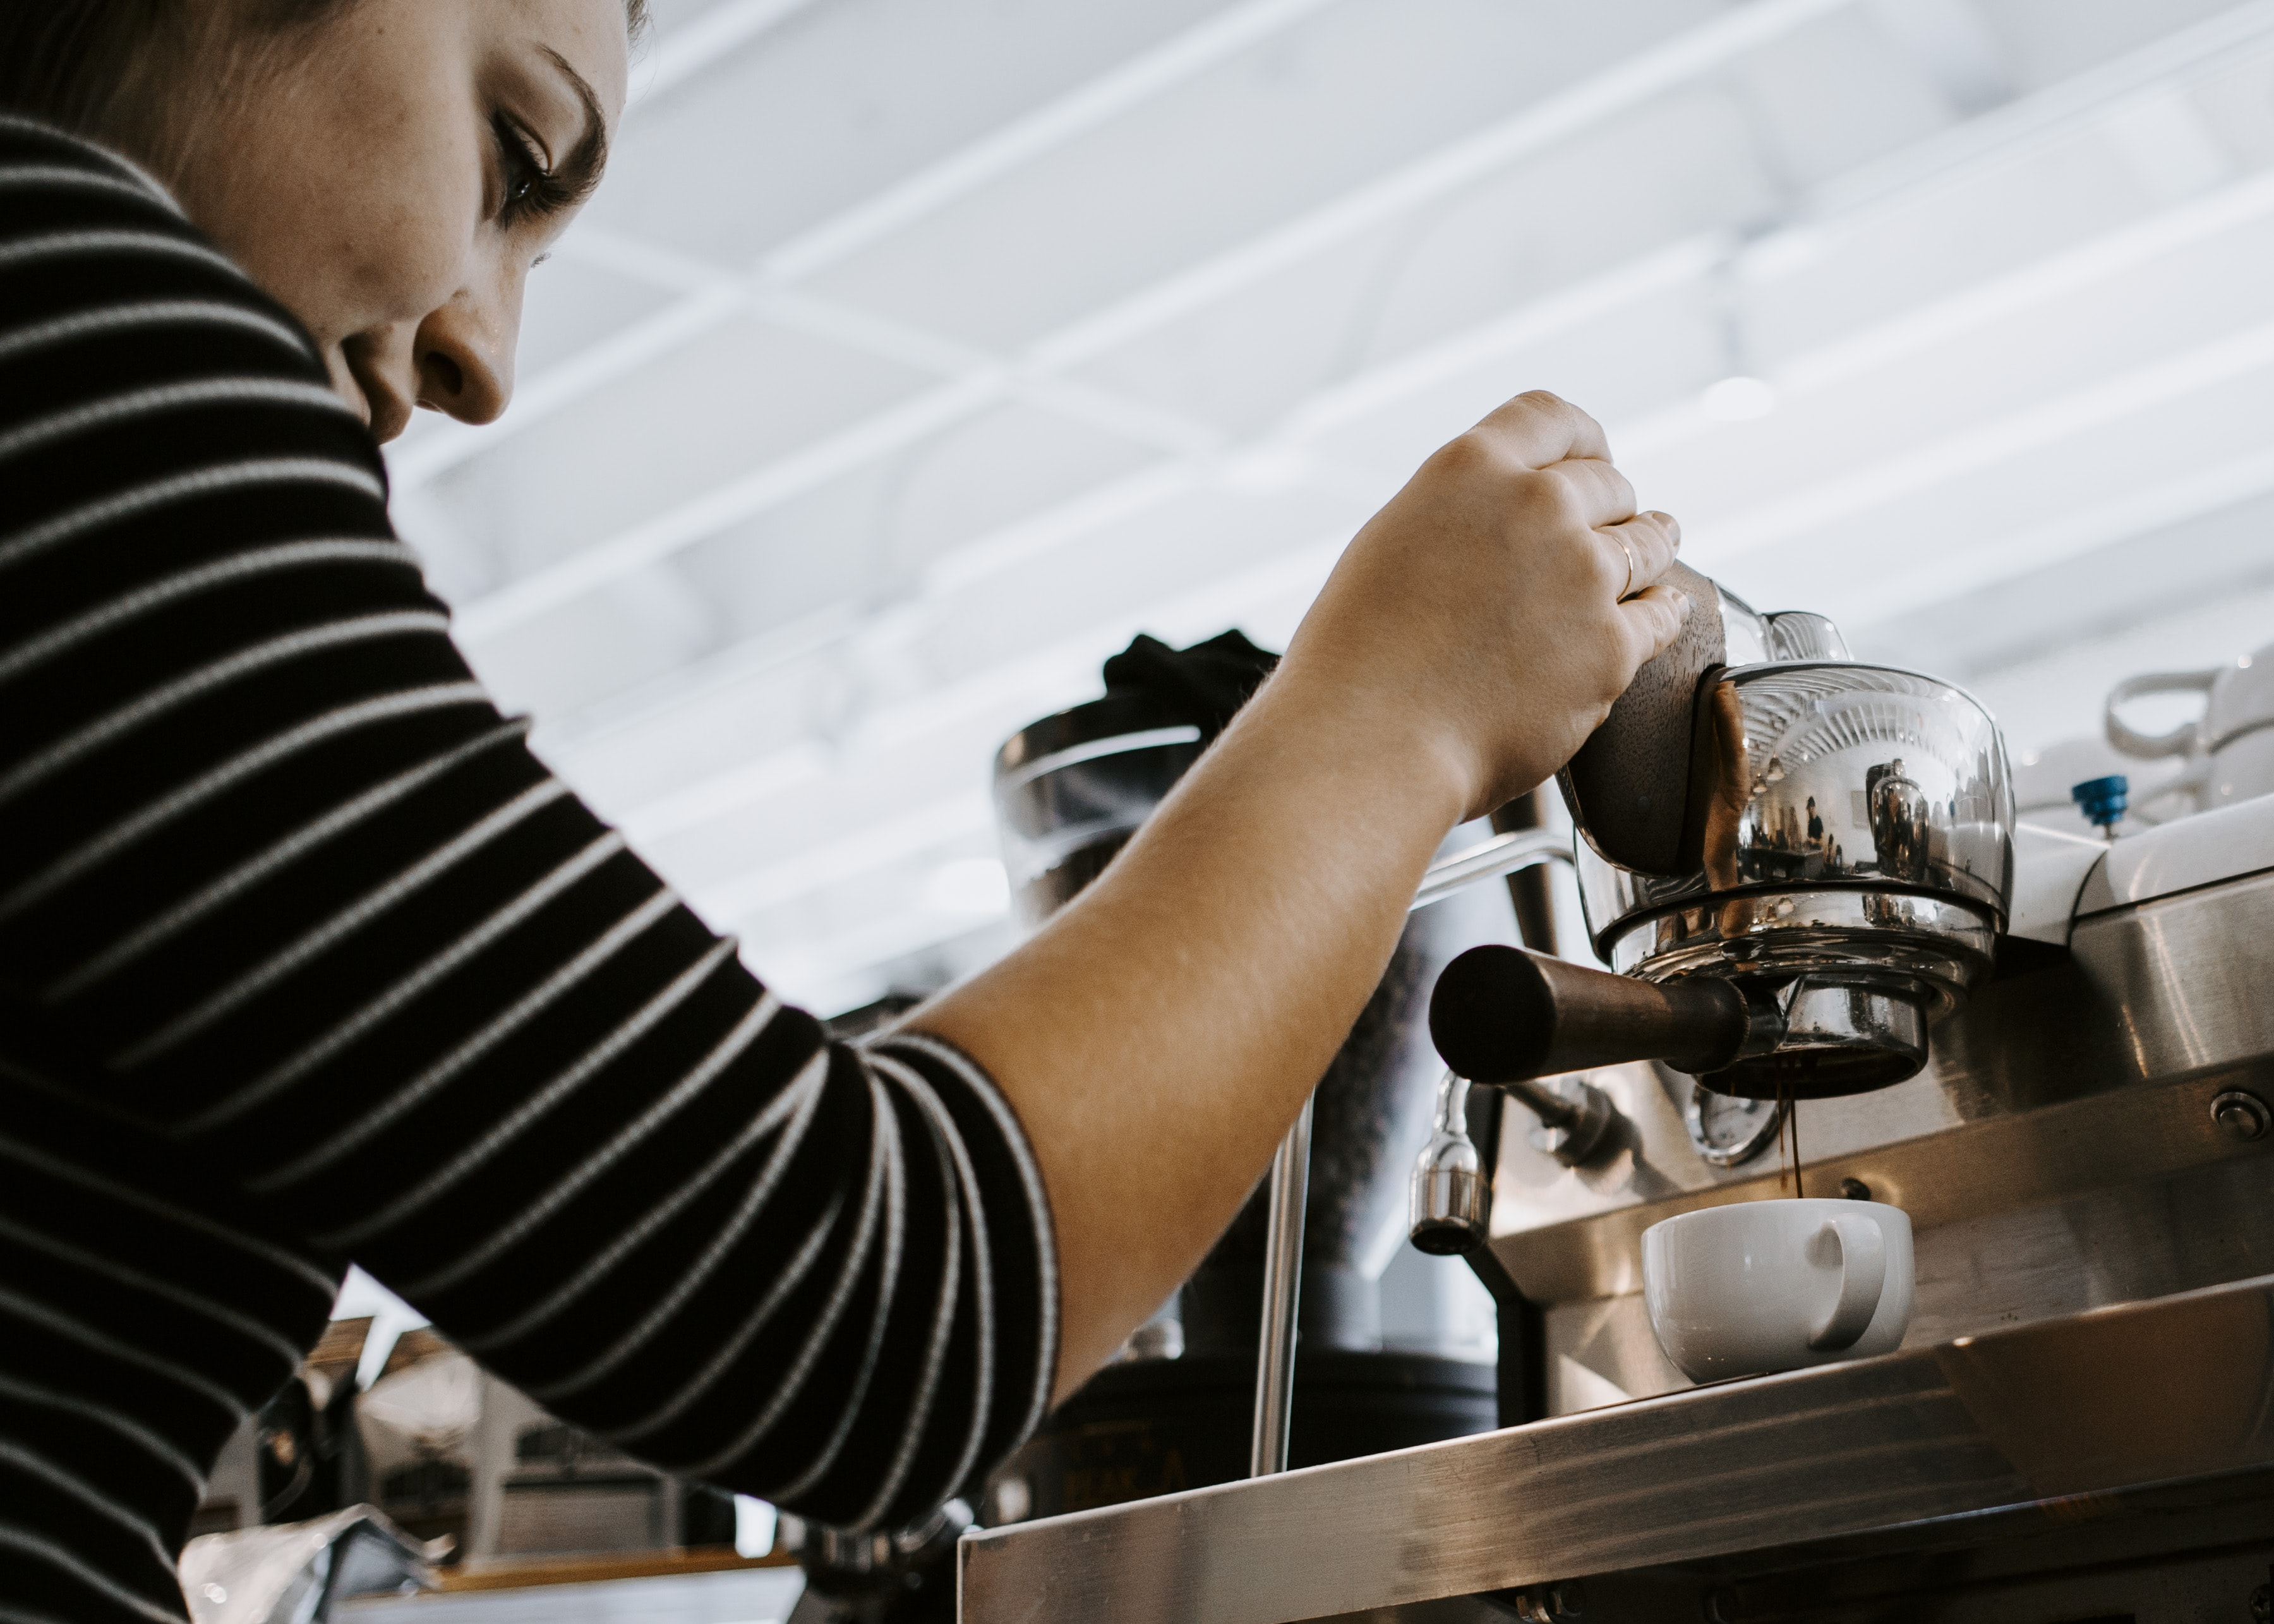 woman holding espresso machine pouring on teacup